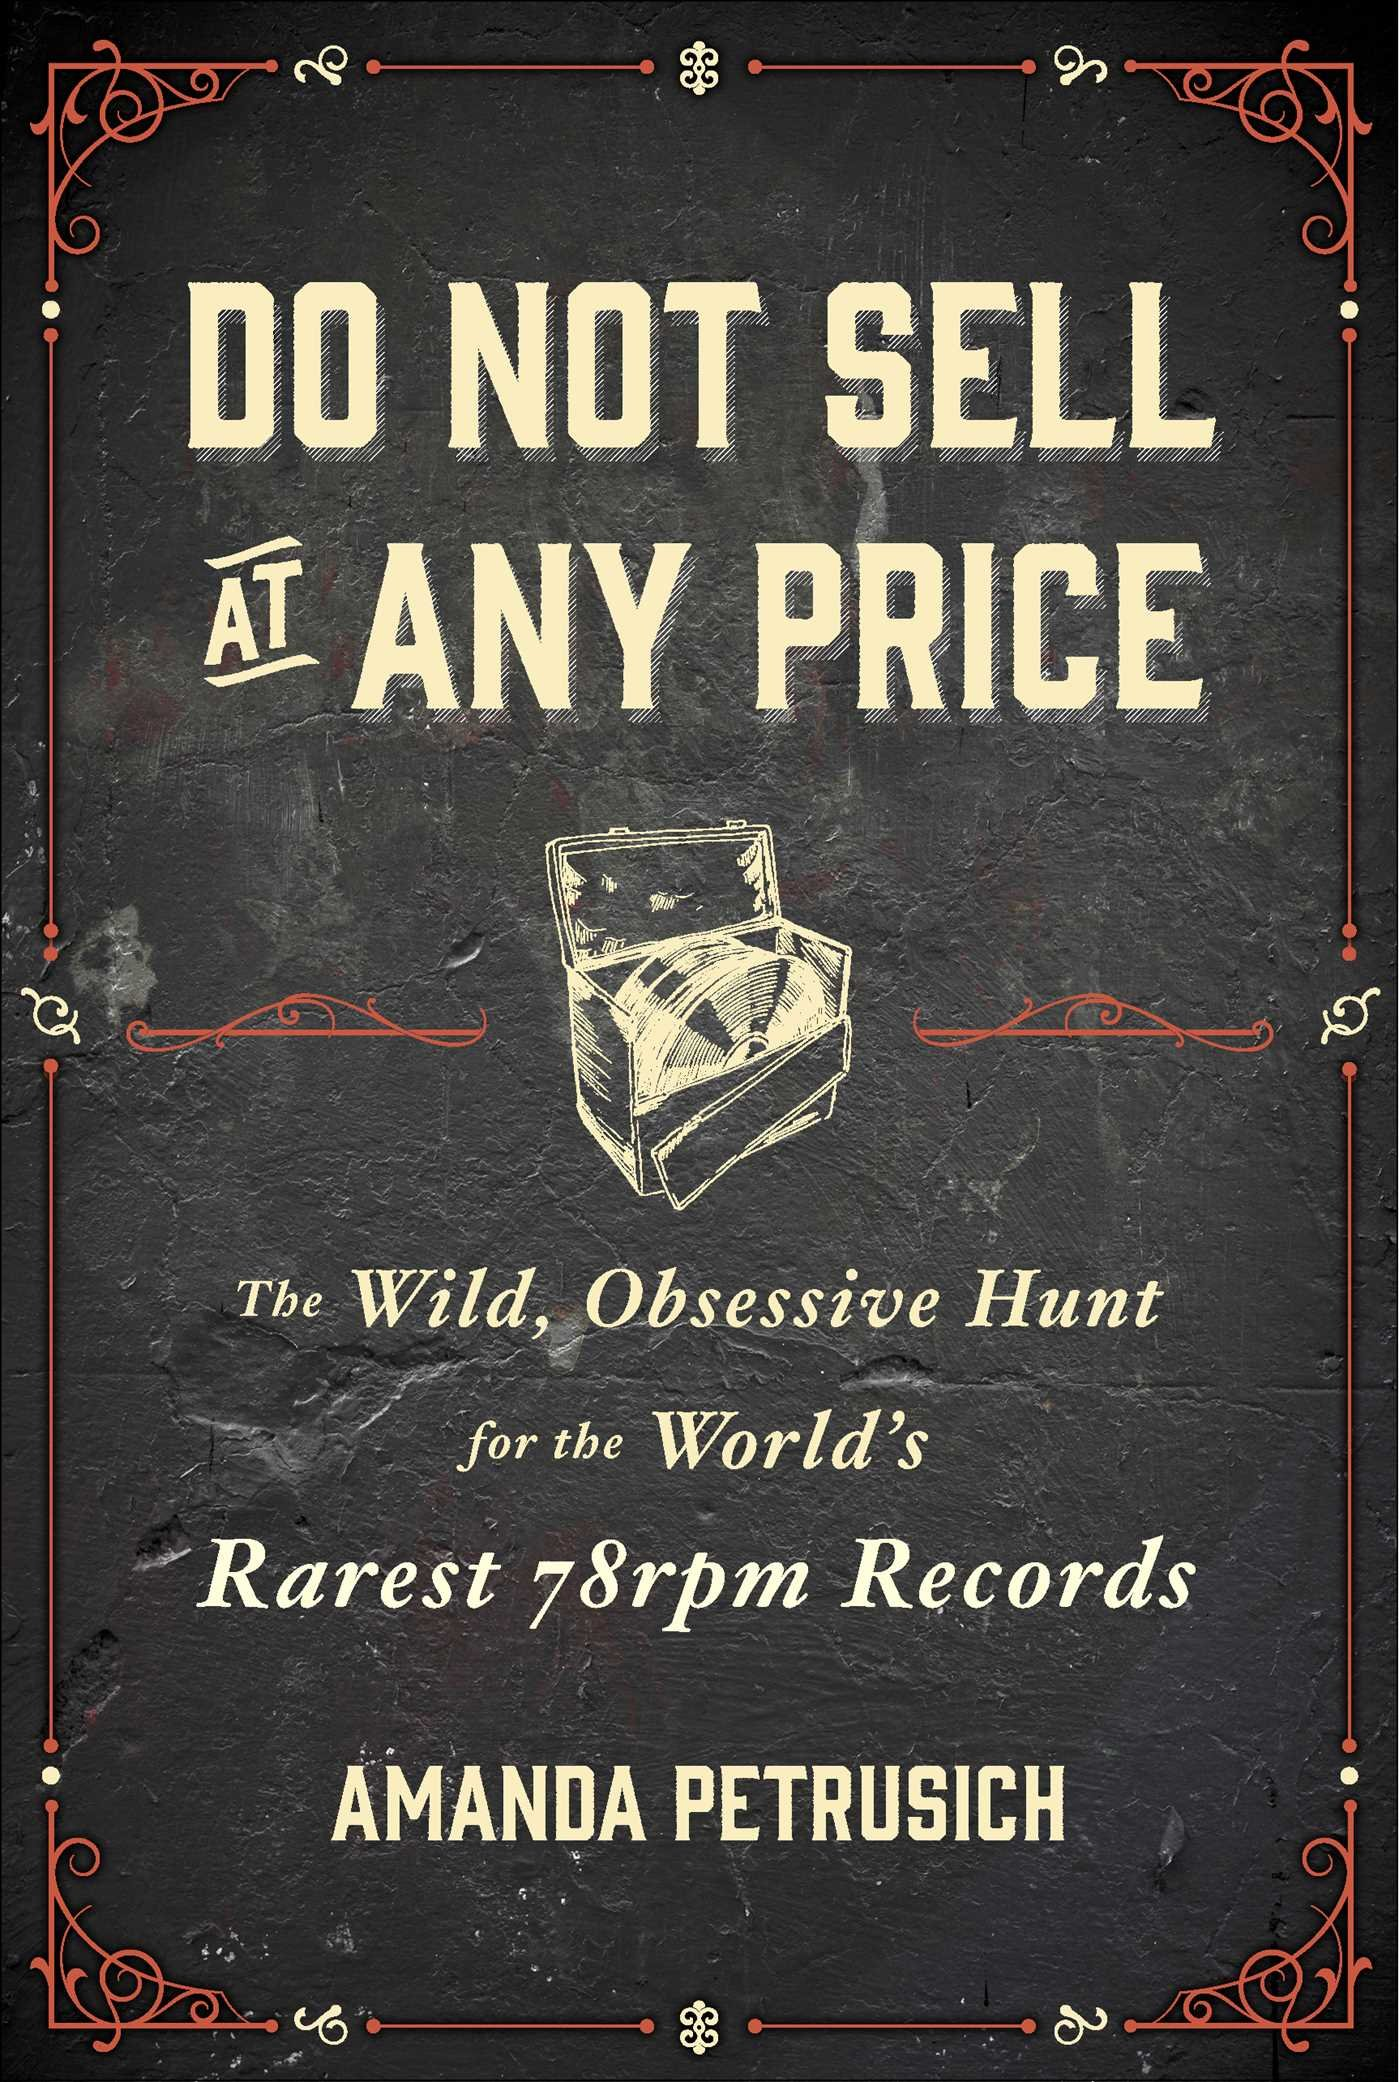 """Image courtesy of Simon & Schuster Publishing, cover for """"Do Not Sell at Any Price"""""""